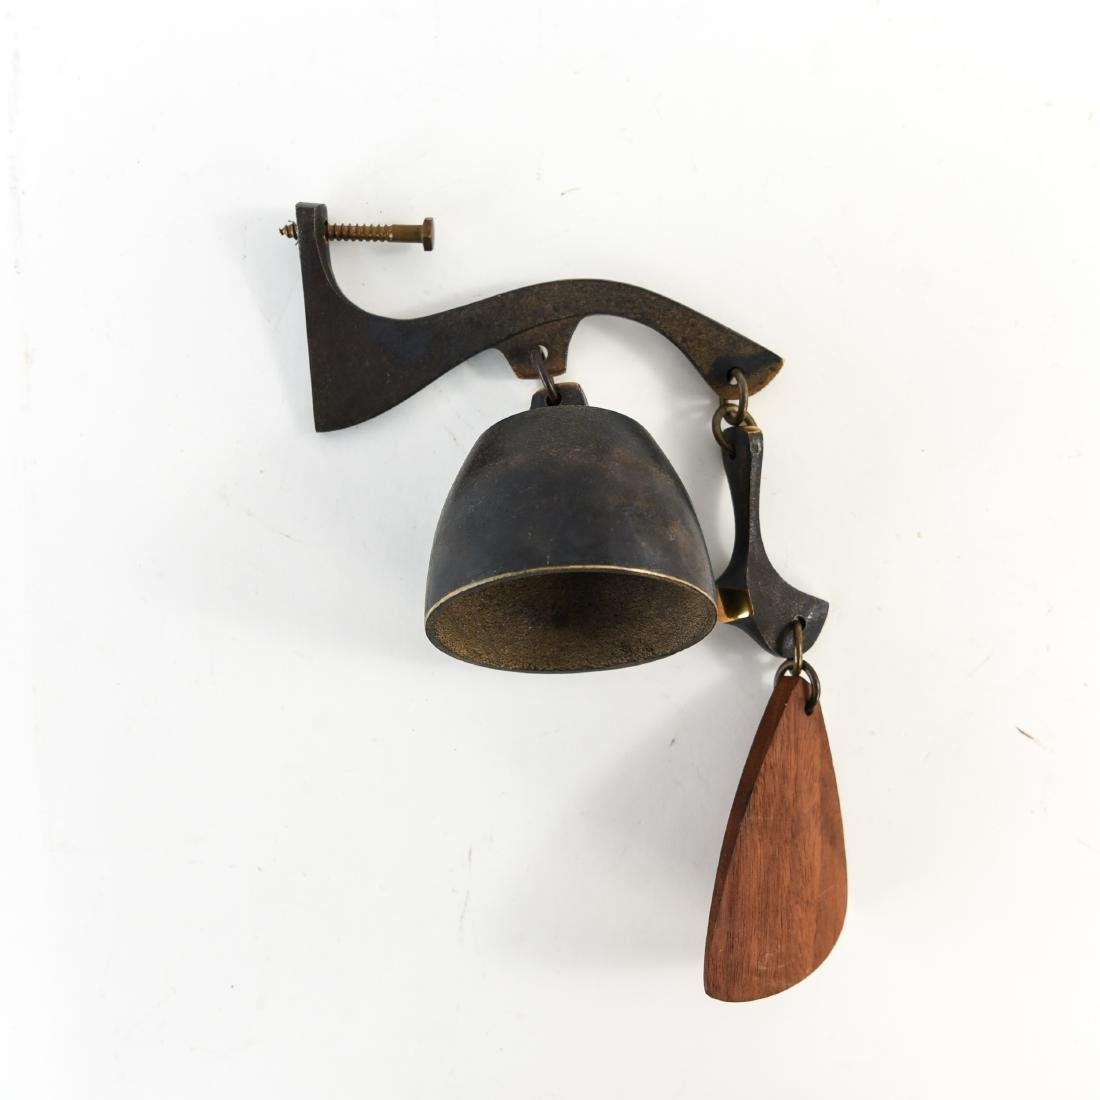 RICHARD FISHER BRONZE BELL